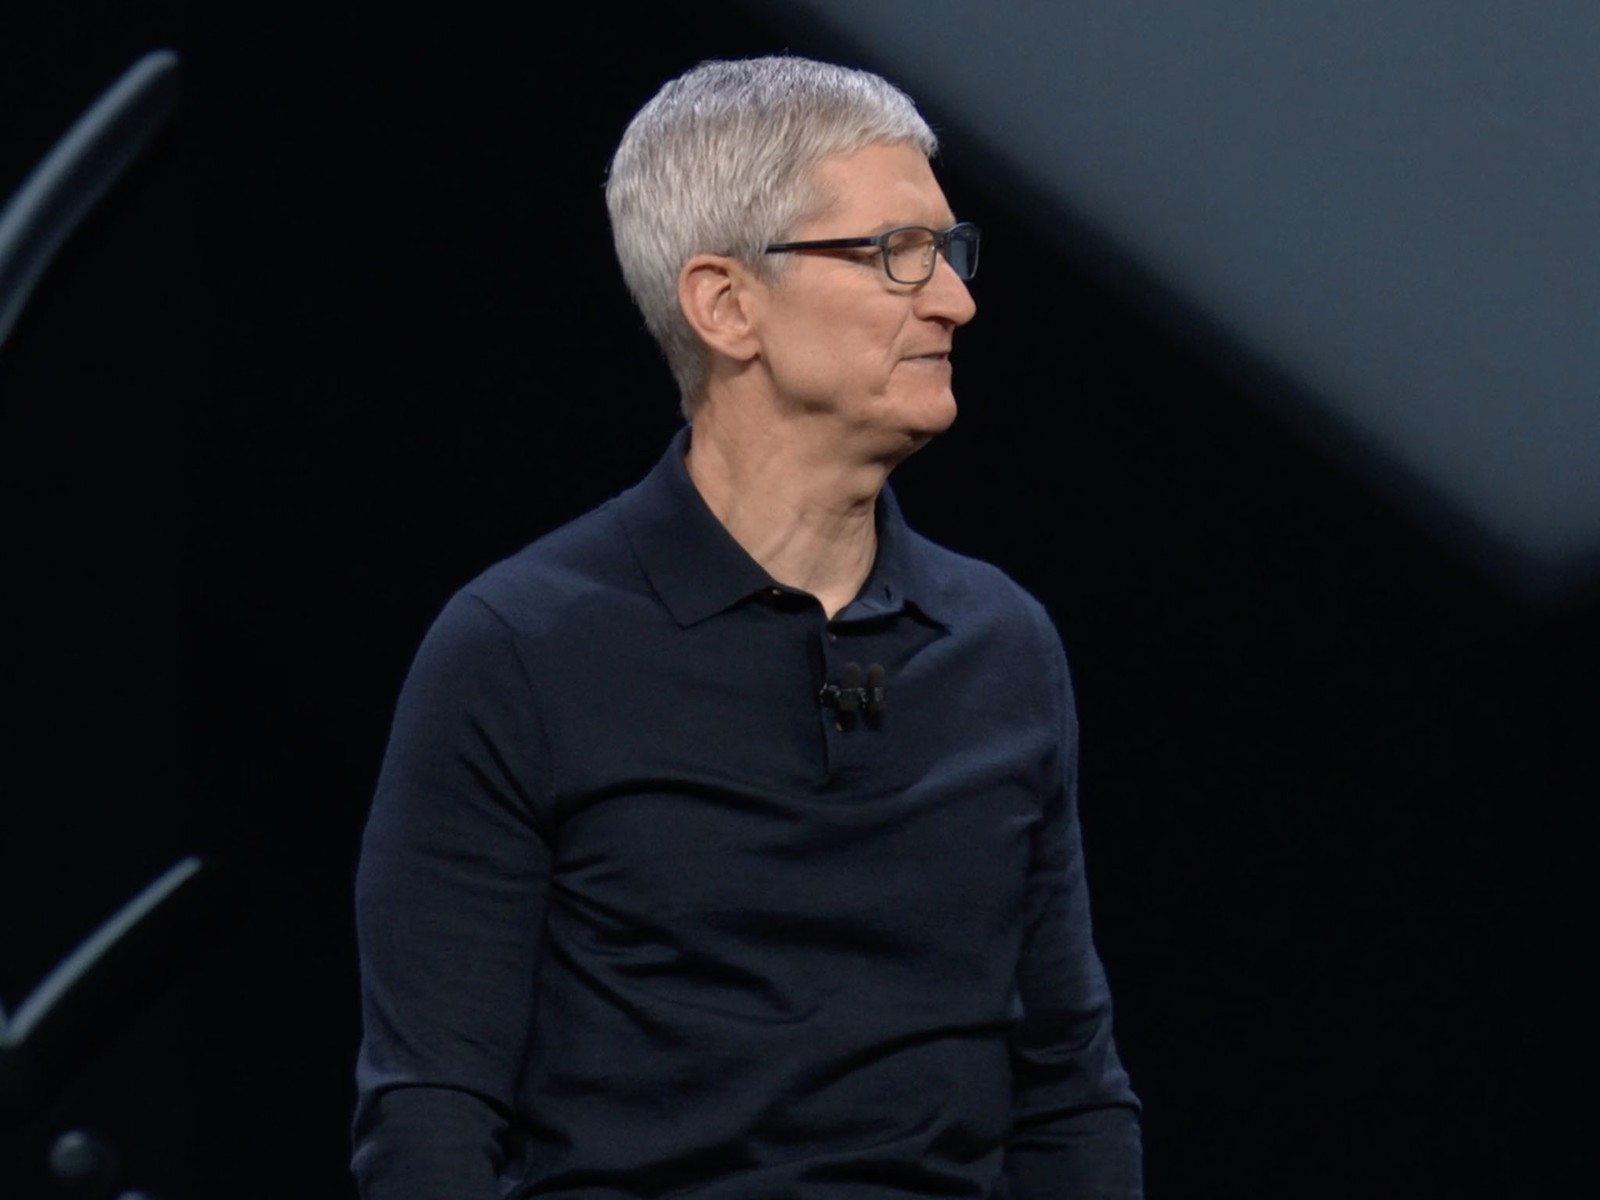 Tim Cook looks across the stage at Apple's WWDC event in 2018